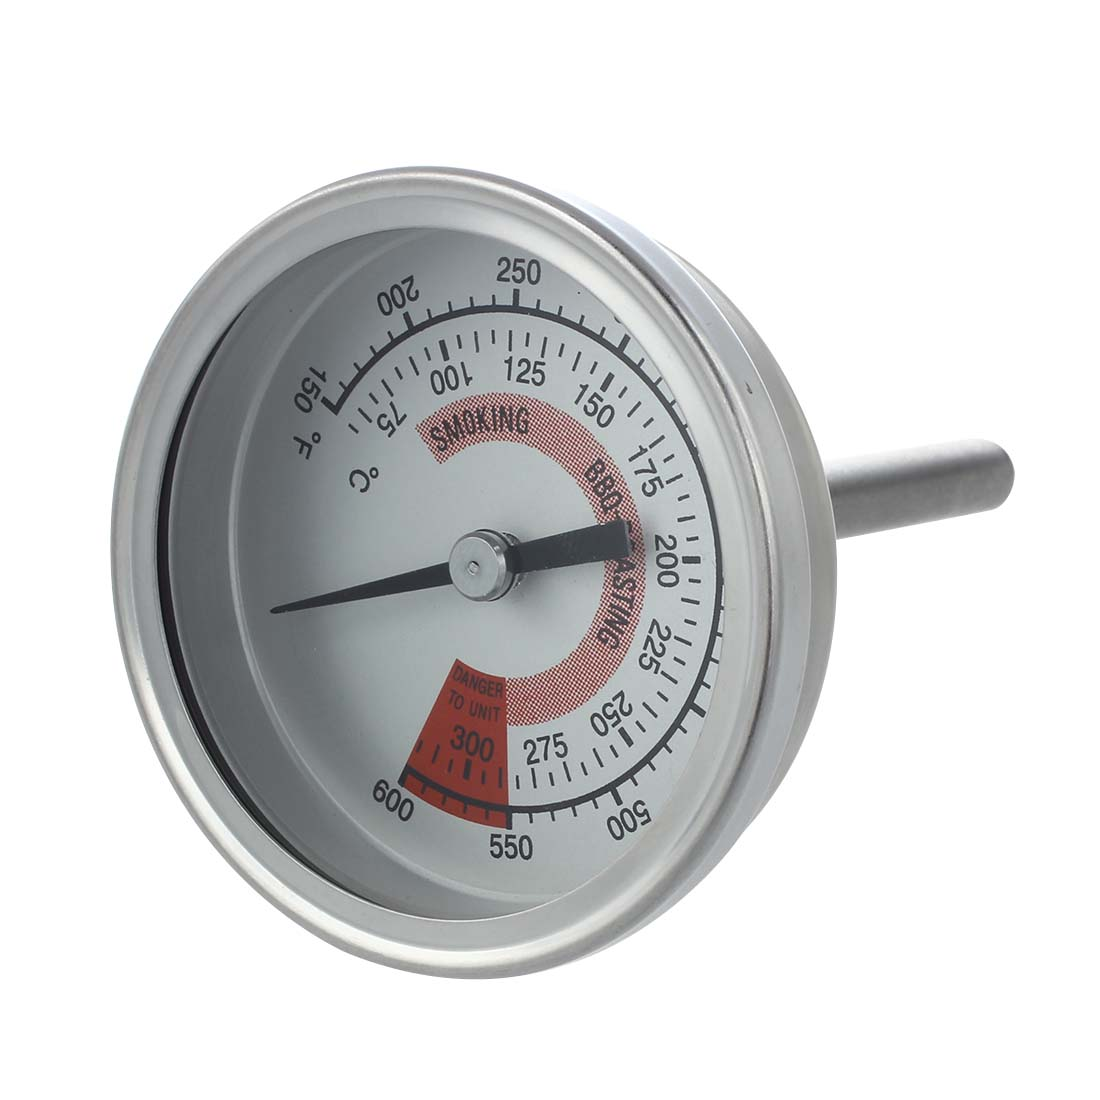 Barbecue BBQ Pit Smoker Grill Thermometer Gauge 300